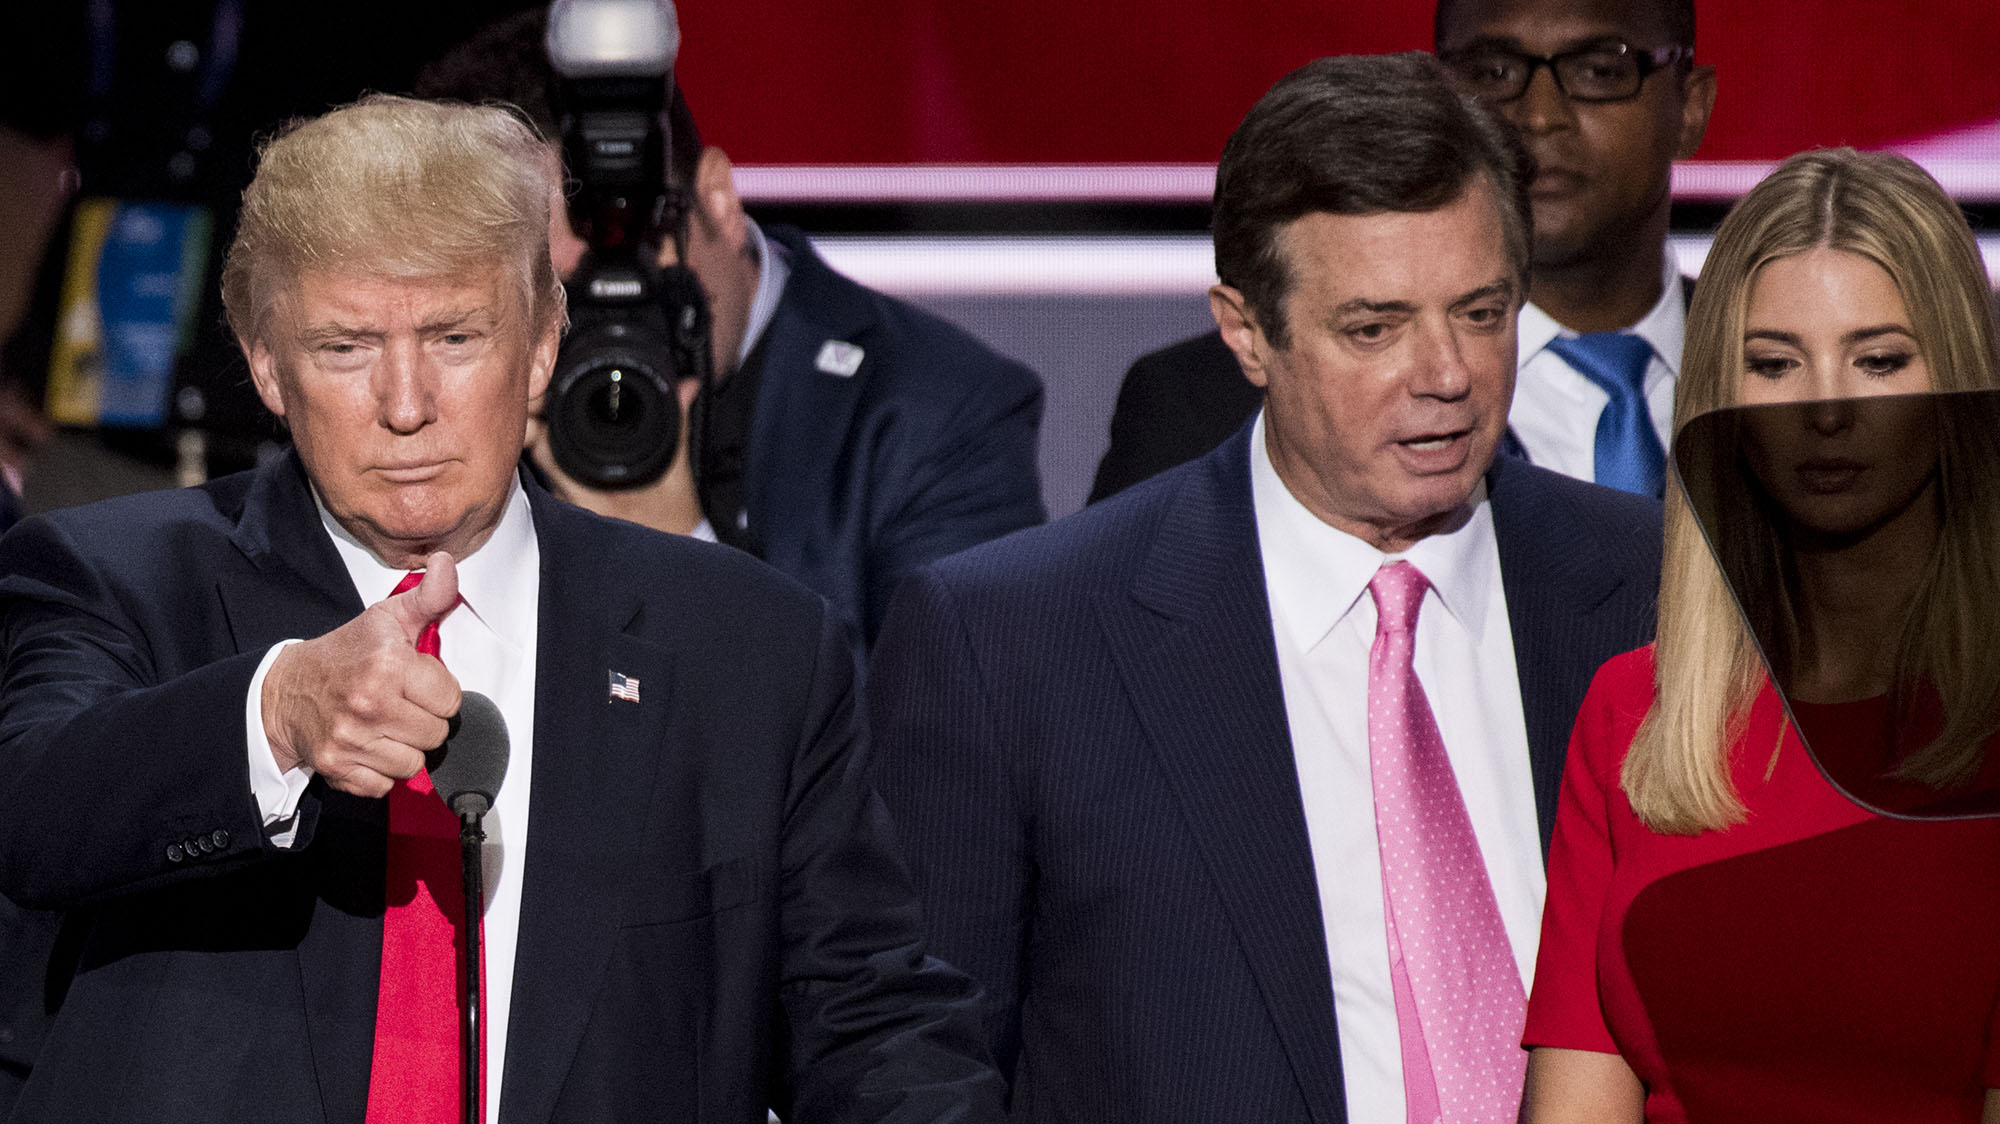 Federal Bureau of Investigation  allegedly wiretapped Paul Manafort before, after election